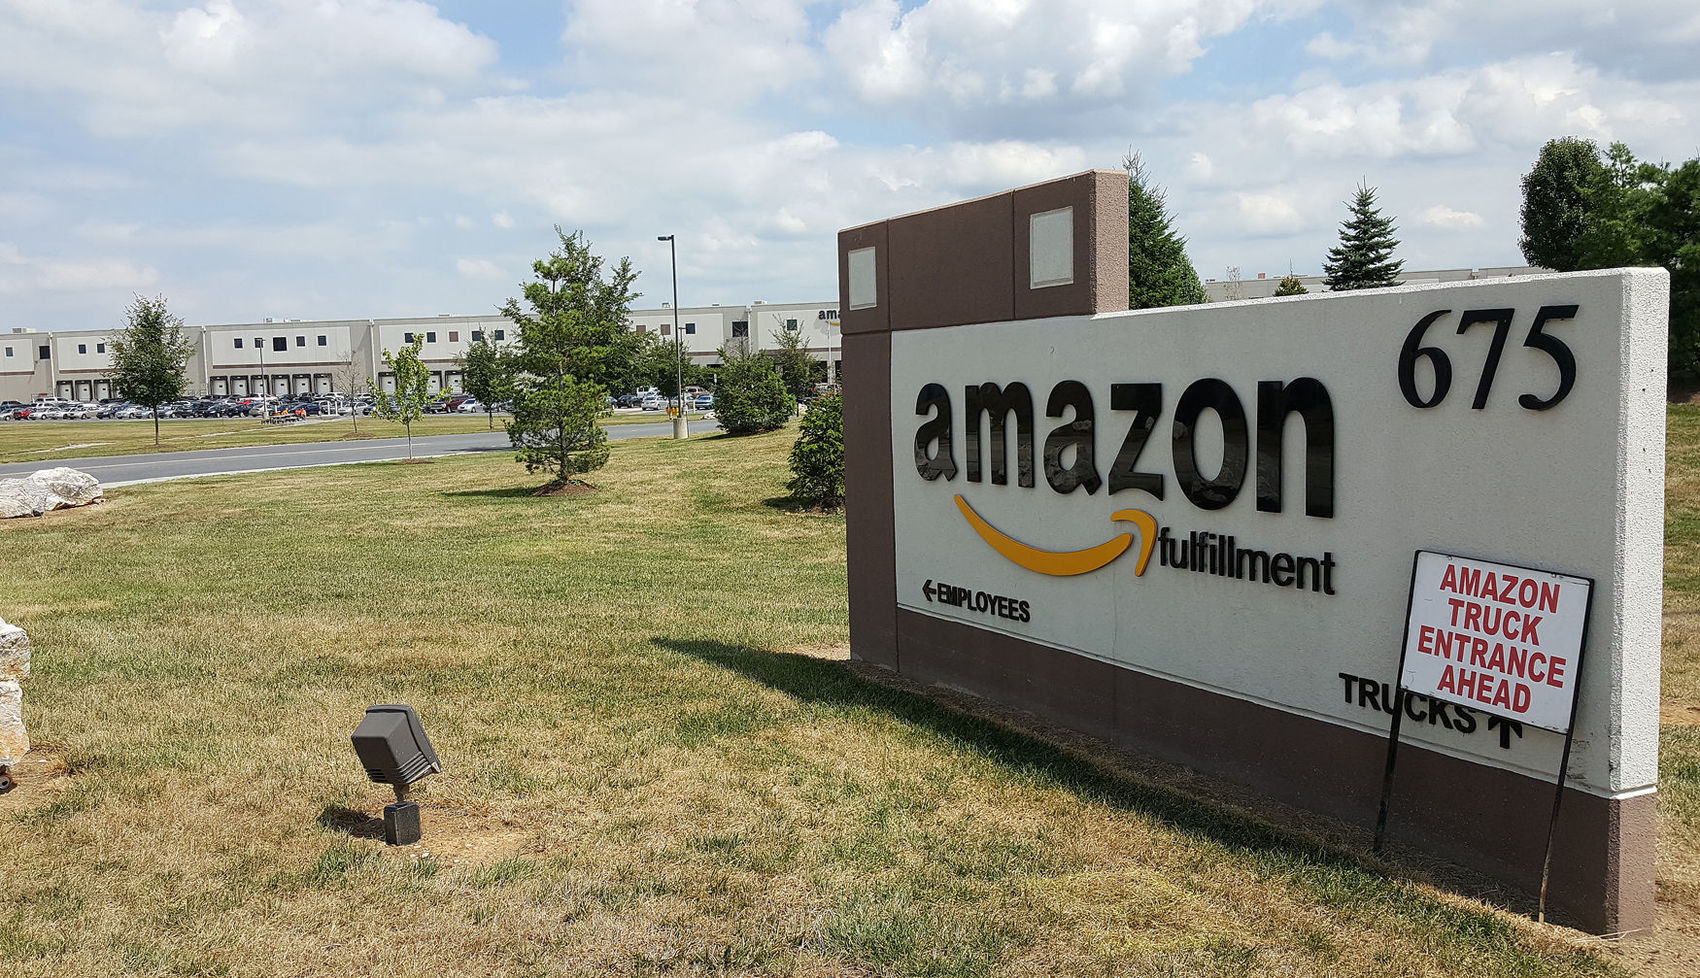 Pennsylvania Rolls Out Red Carpet for Amazon with Most Generous Incentives Ever Offered